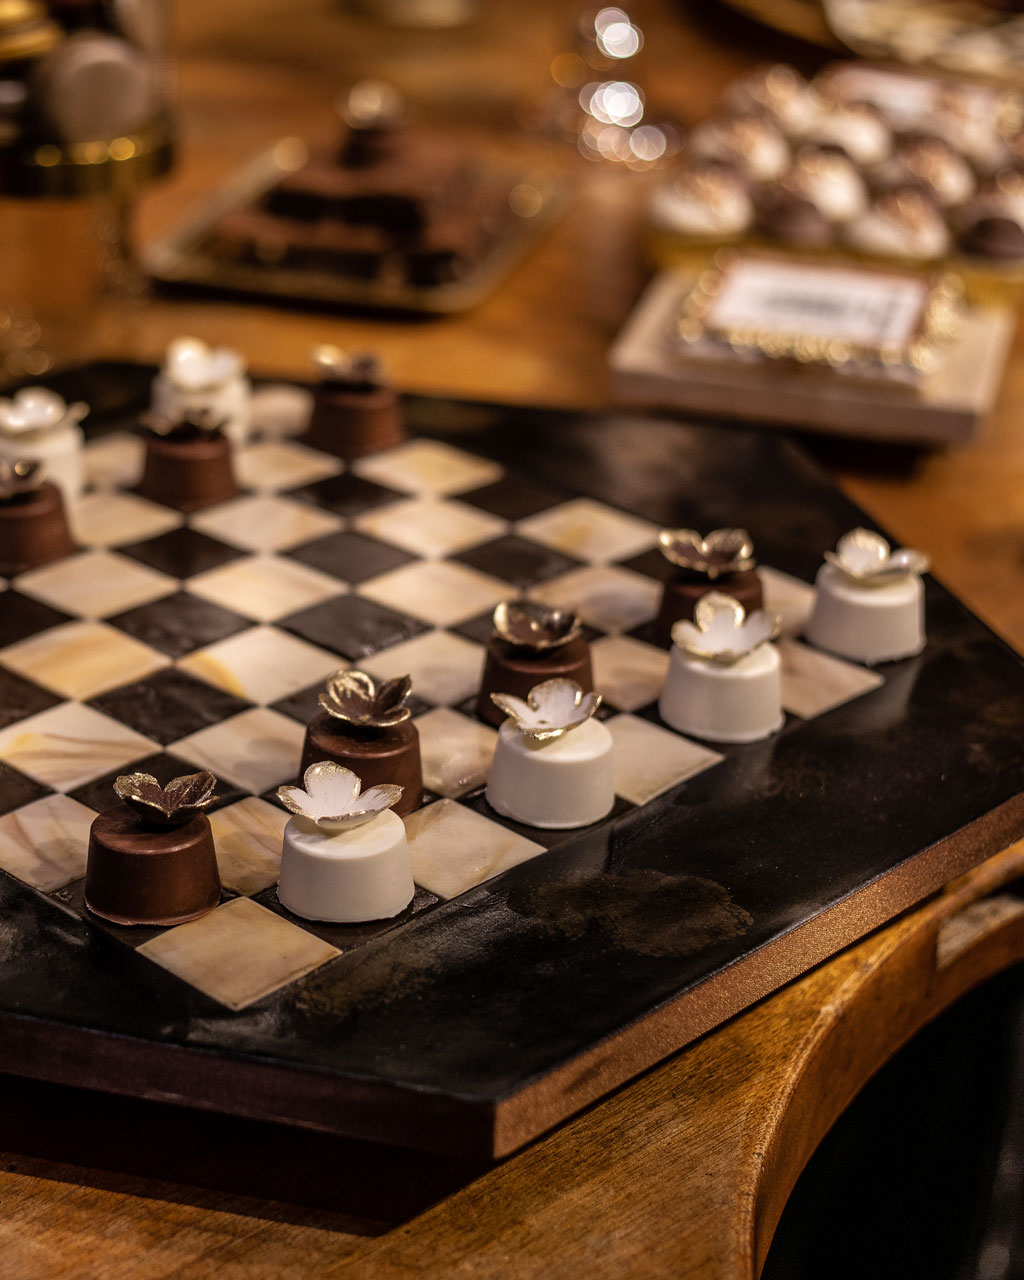 chess board made out of cake at Maison Assouline by GC Couture